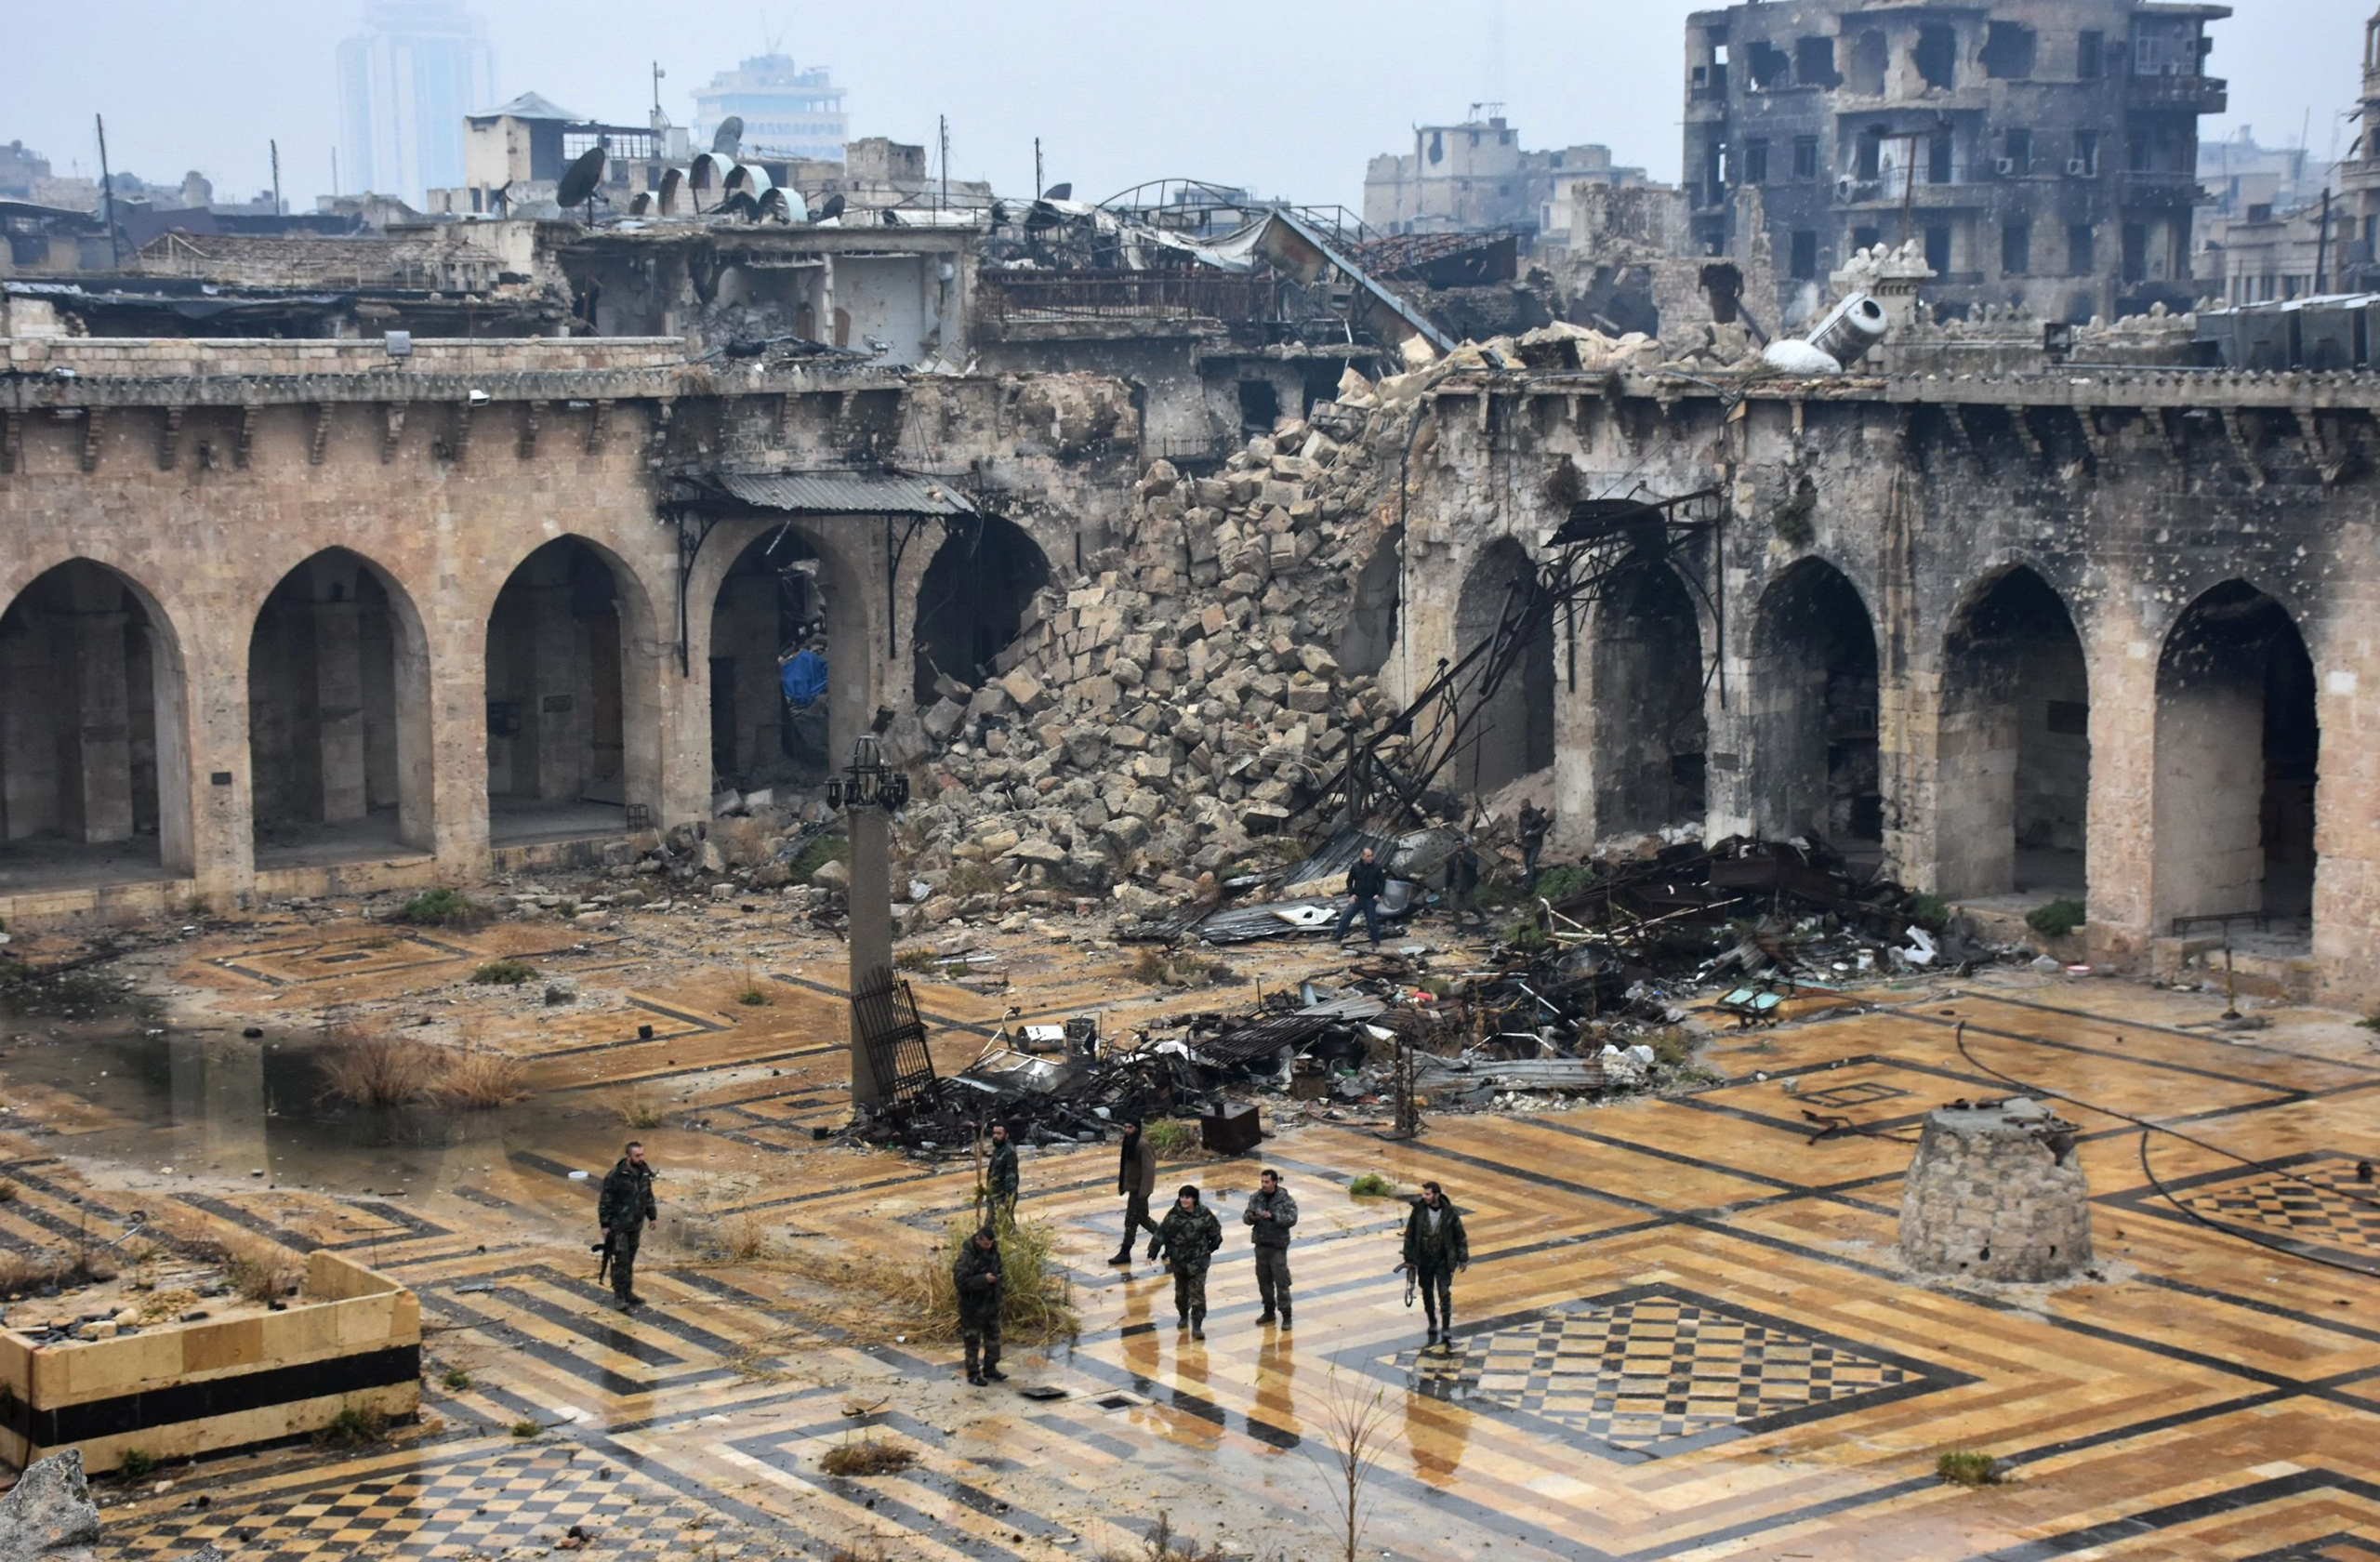 Syrian pro-government forces walk in the ancient Umayyad mosque in Aleppo after they captured the area on Dec. 13, 2016.